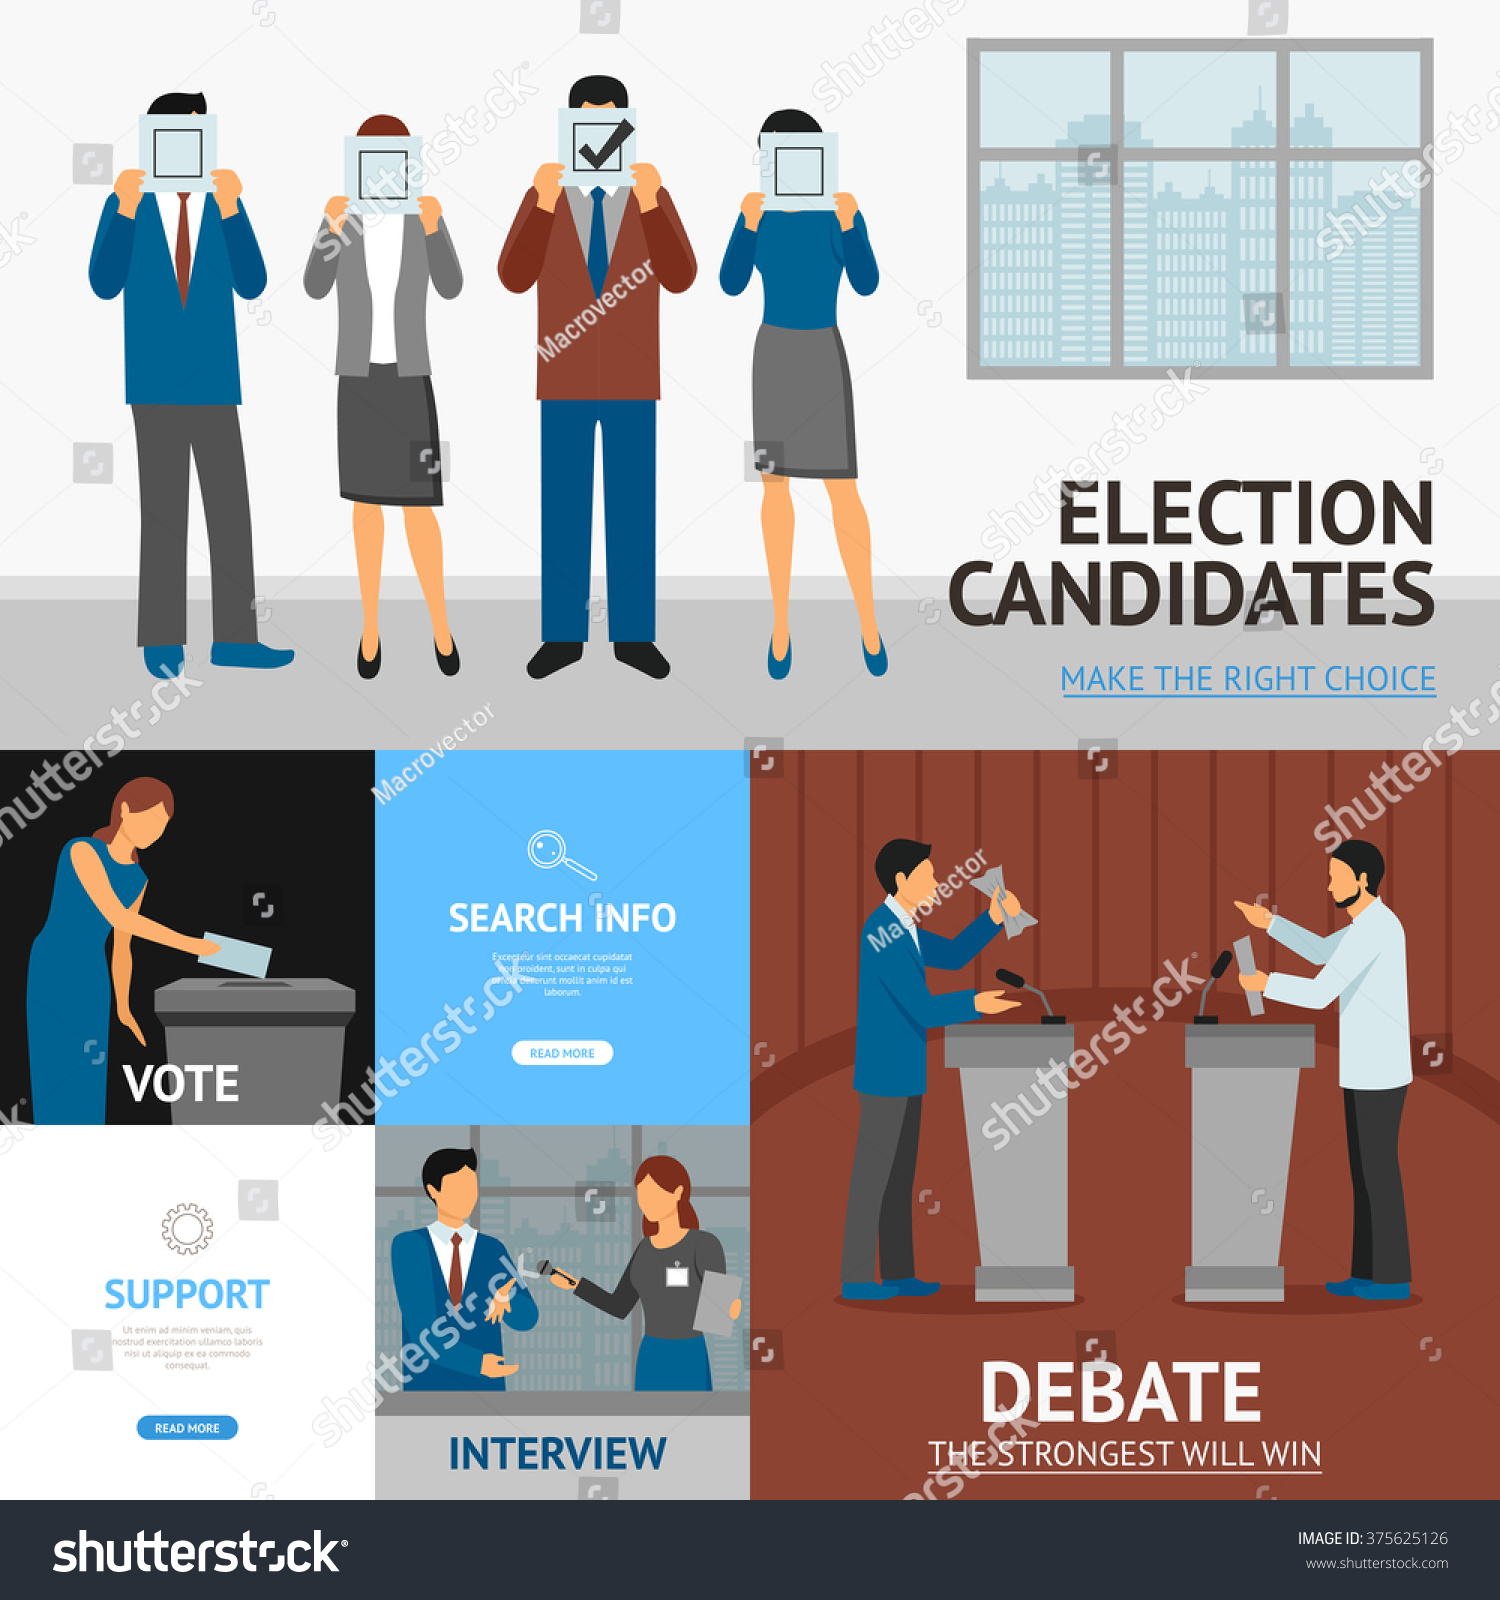 political election candidates promises debates and interview save to a lightbox